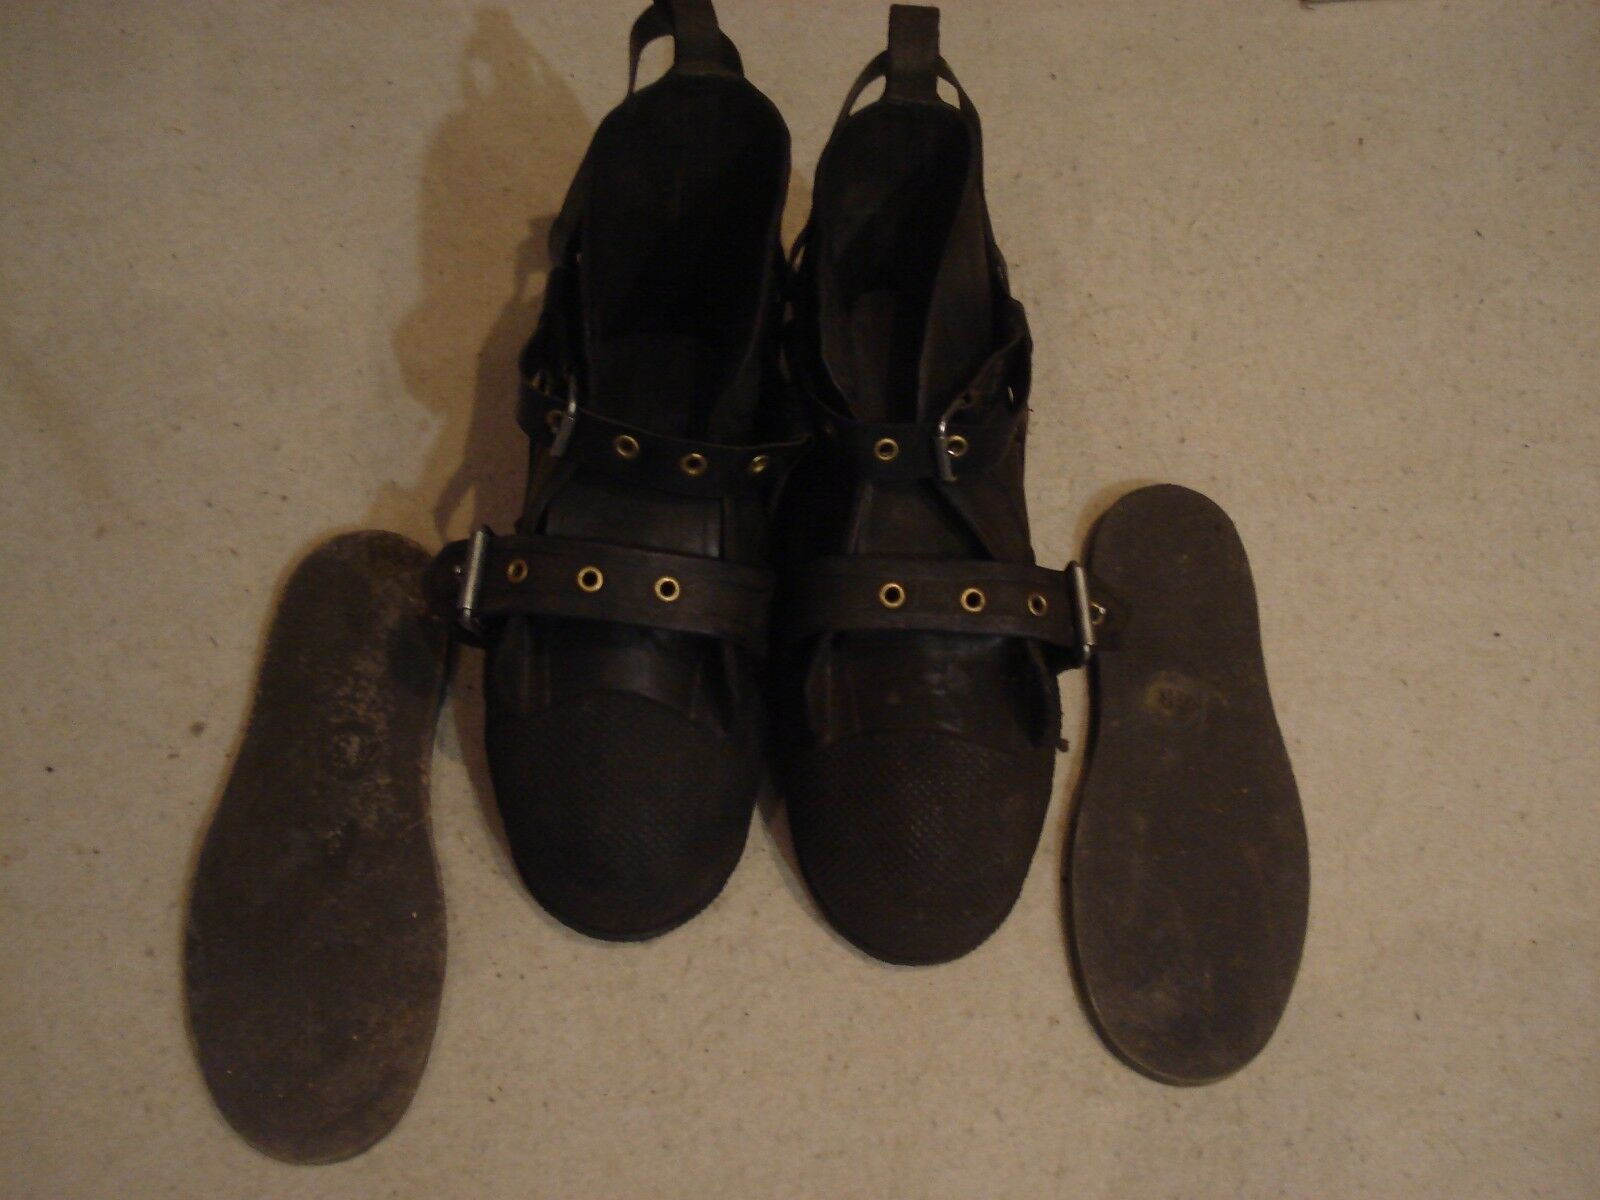 USSR Soviet Russian rubber diving boots for drysuit